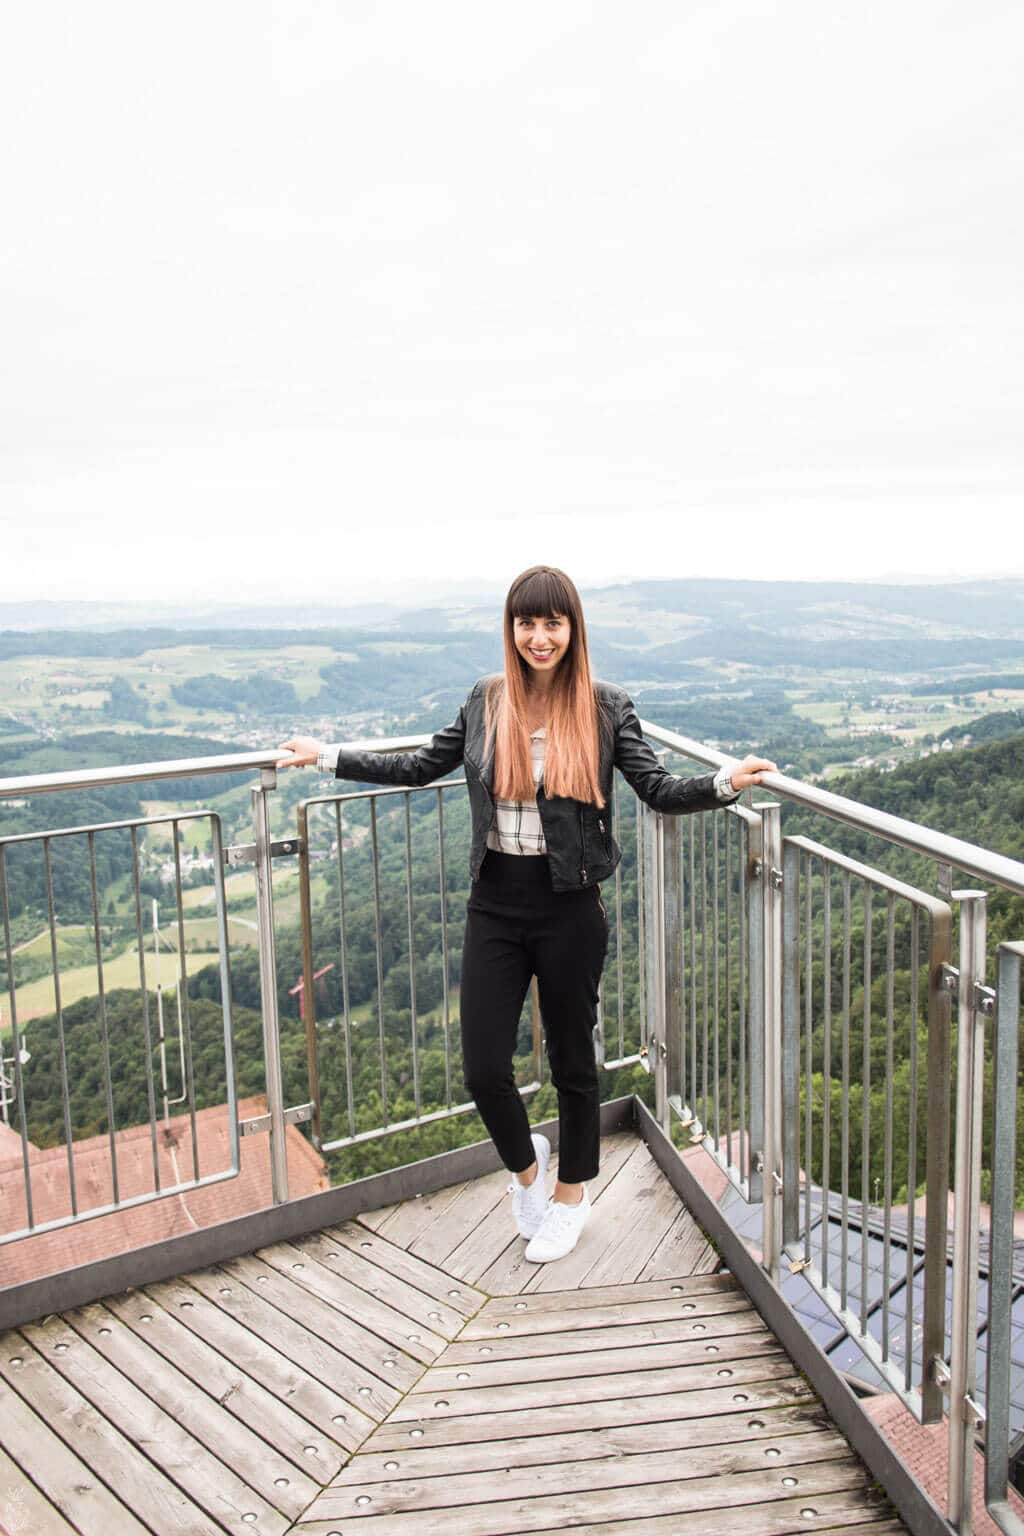 6 Things You Have To Do In Zurich, Switzerland